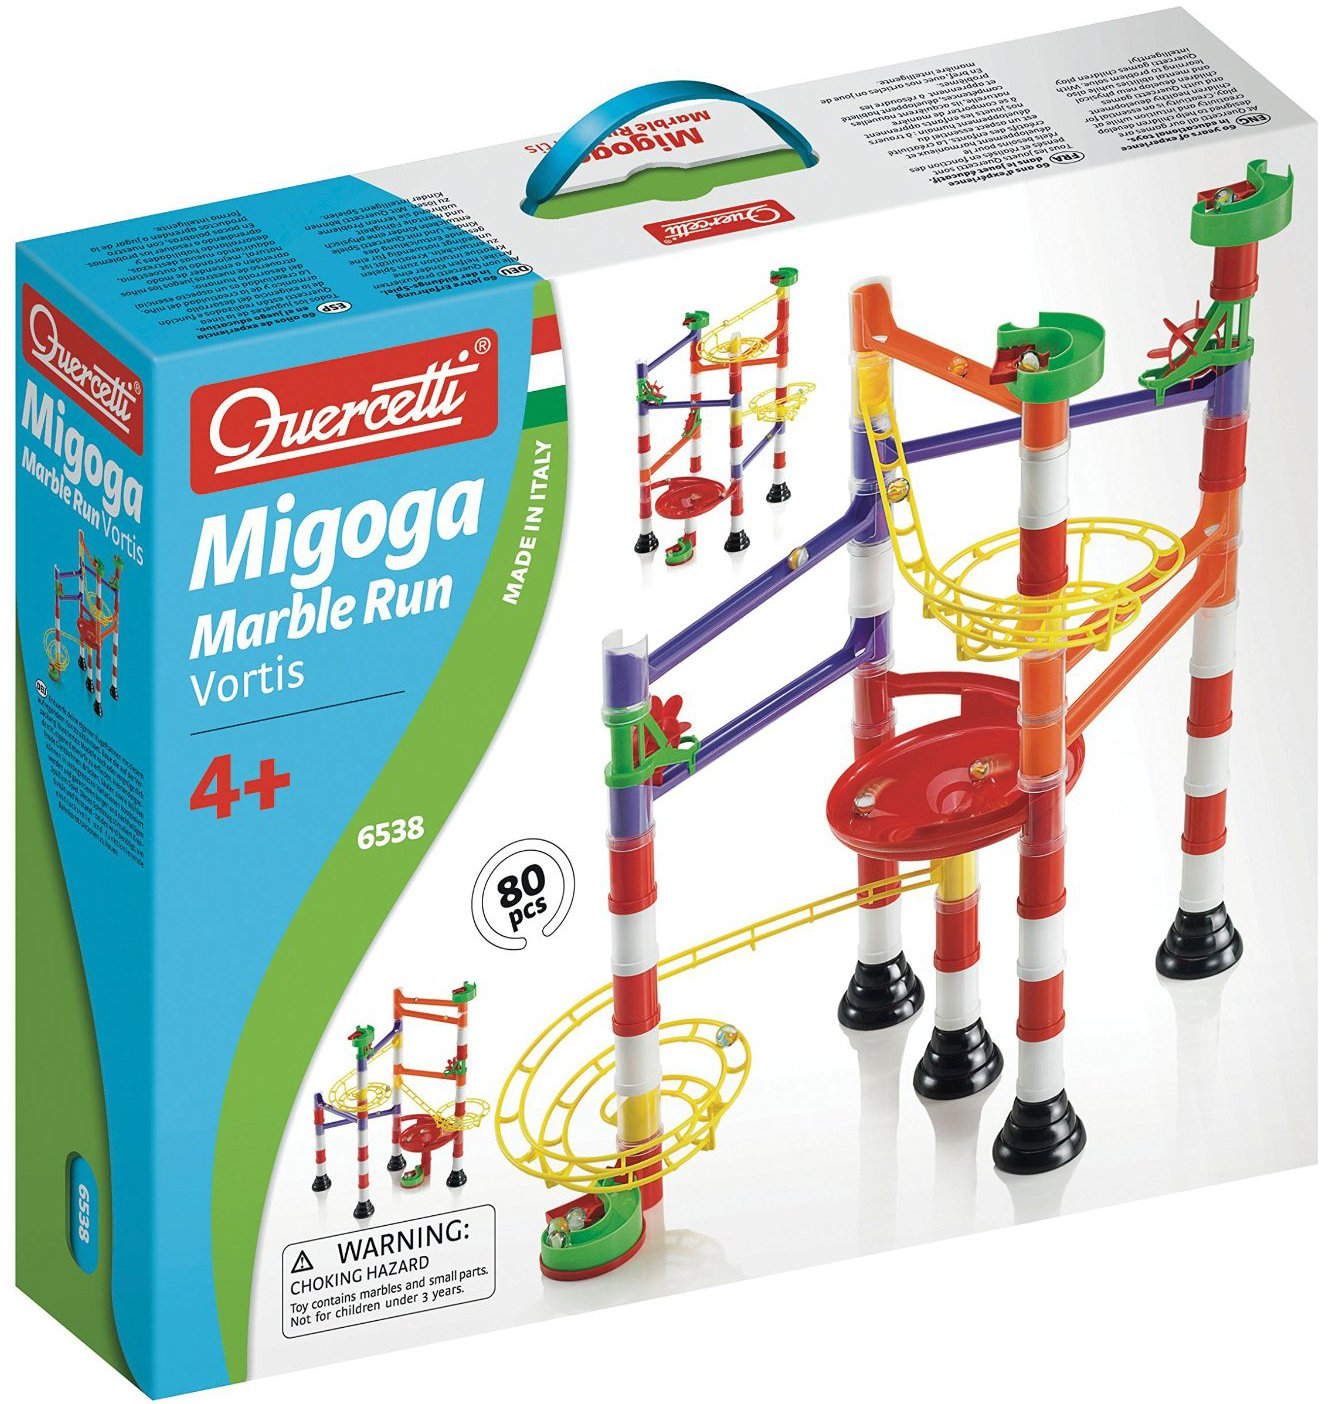 Quercetti Migoga Marble Run Vortis for ages 4 and up marble-run-vortis